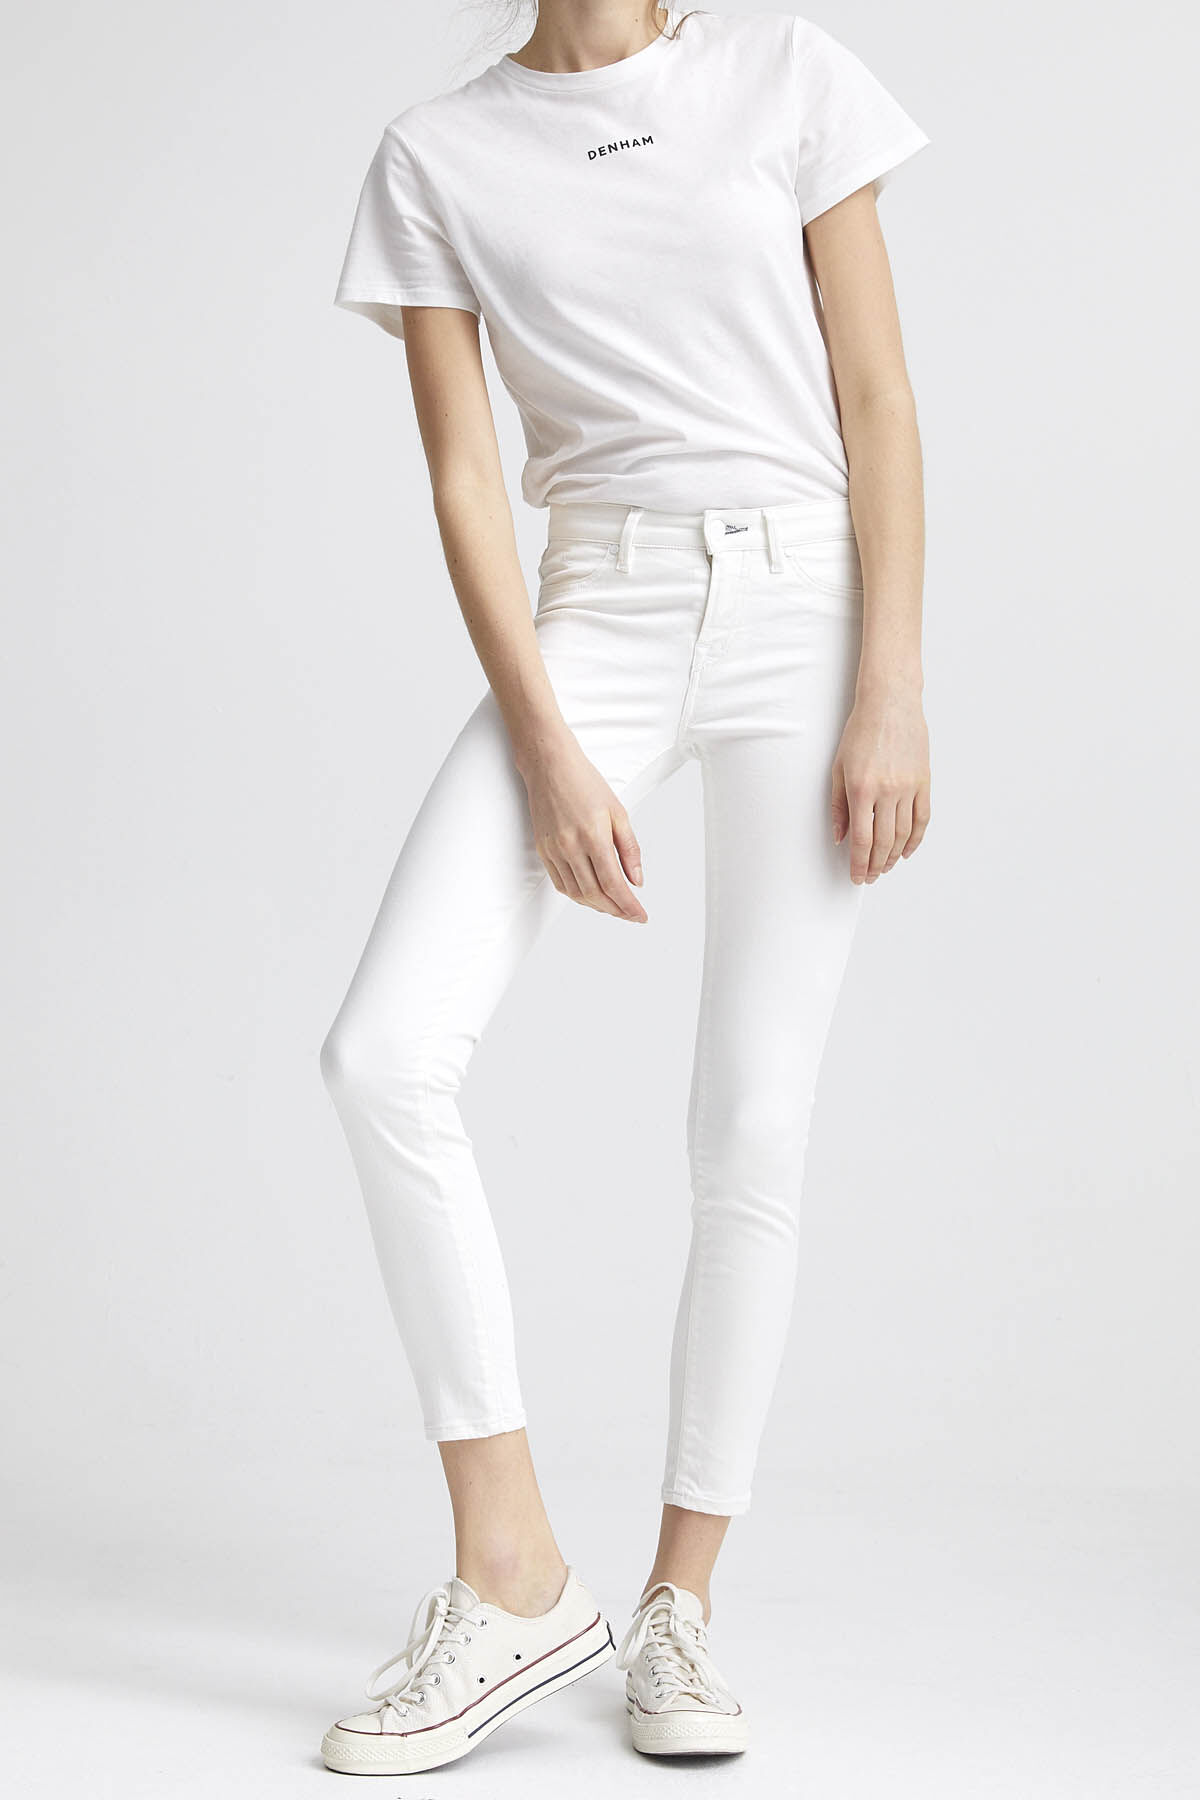 SPRAY White Clean Finish Denim - Mid-rise, Tight Fit